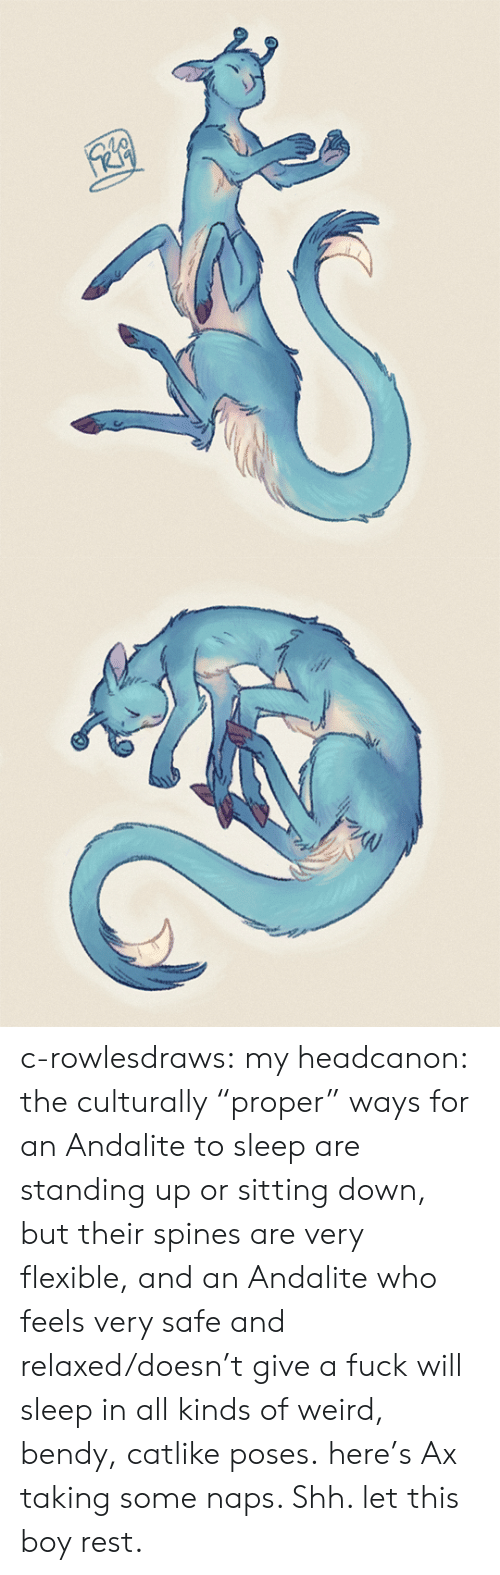 """relaxed: c-rowlesdraws: my headcanon: the culturally """"proper"""" ways for an Andalite to sleep are standing up or sitting down, but their spines are very flexible, and an Andalite who feels very safe and relaxed/doesn't give a fuck will sleep in all kinds of weird, bendy, catlike poses. here's Ax taking some naps. Shh. let this boy rest."""